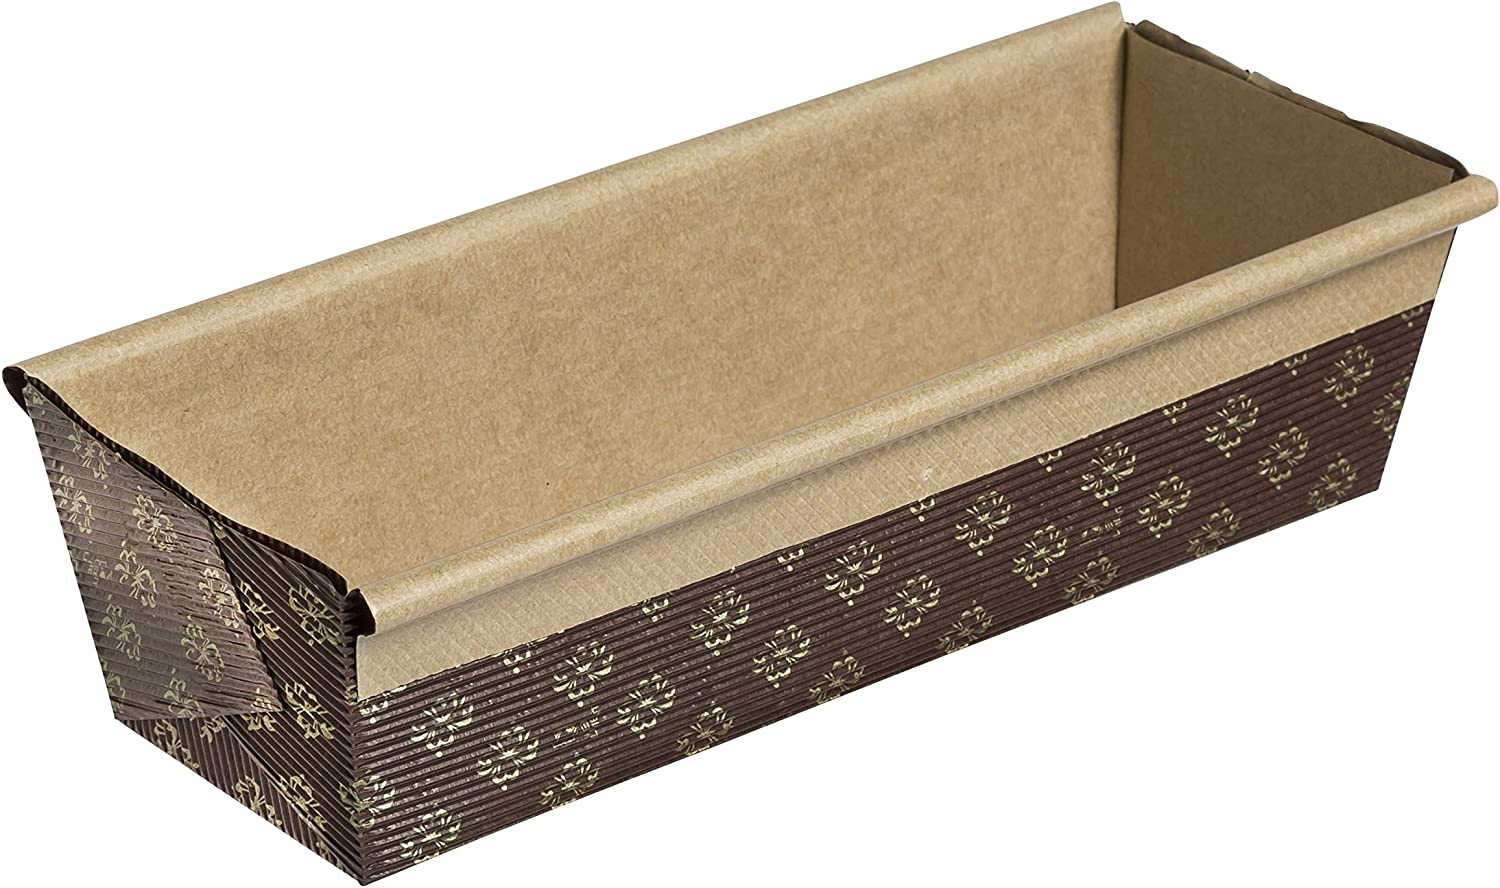 Honey-Can-Do Paper Loaf Pan, 25-Pack, 8-Inches x 2.5-Inches x 2-Inches